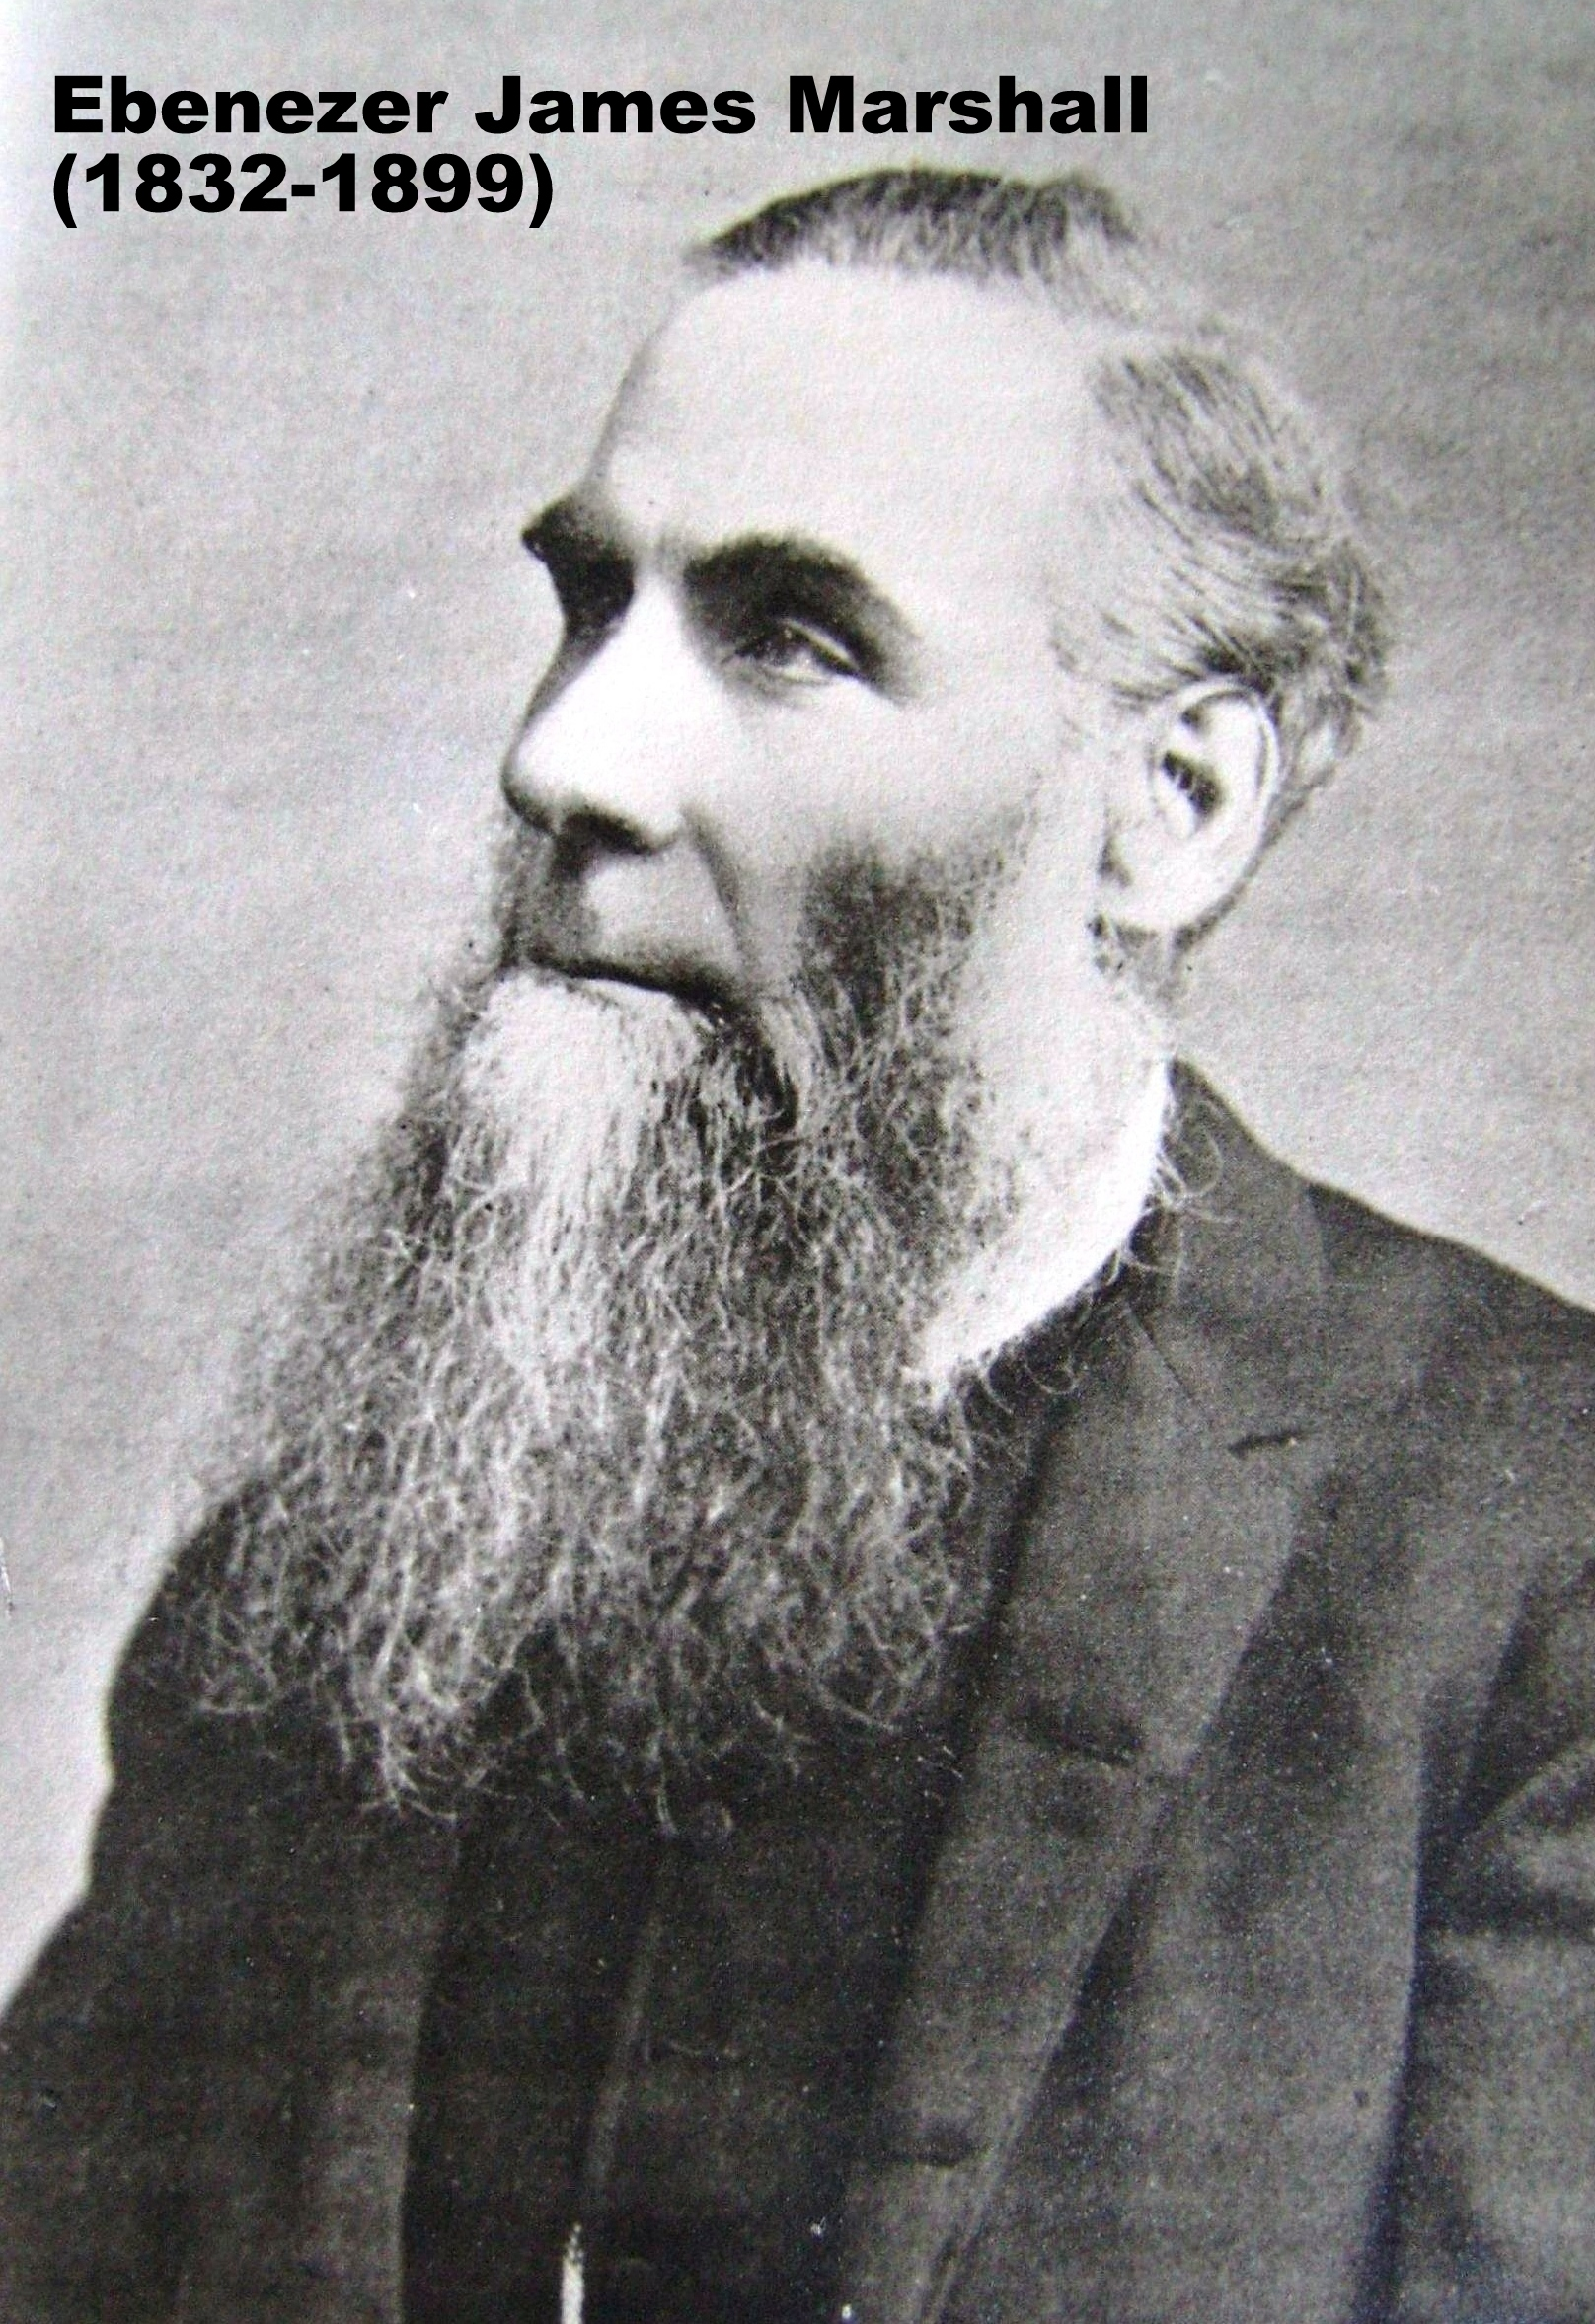 Ebenezer James Marshall